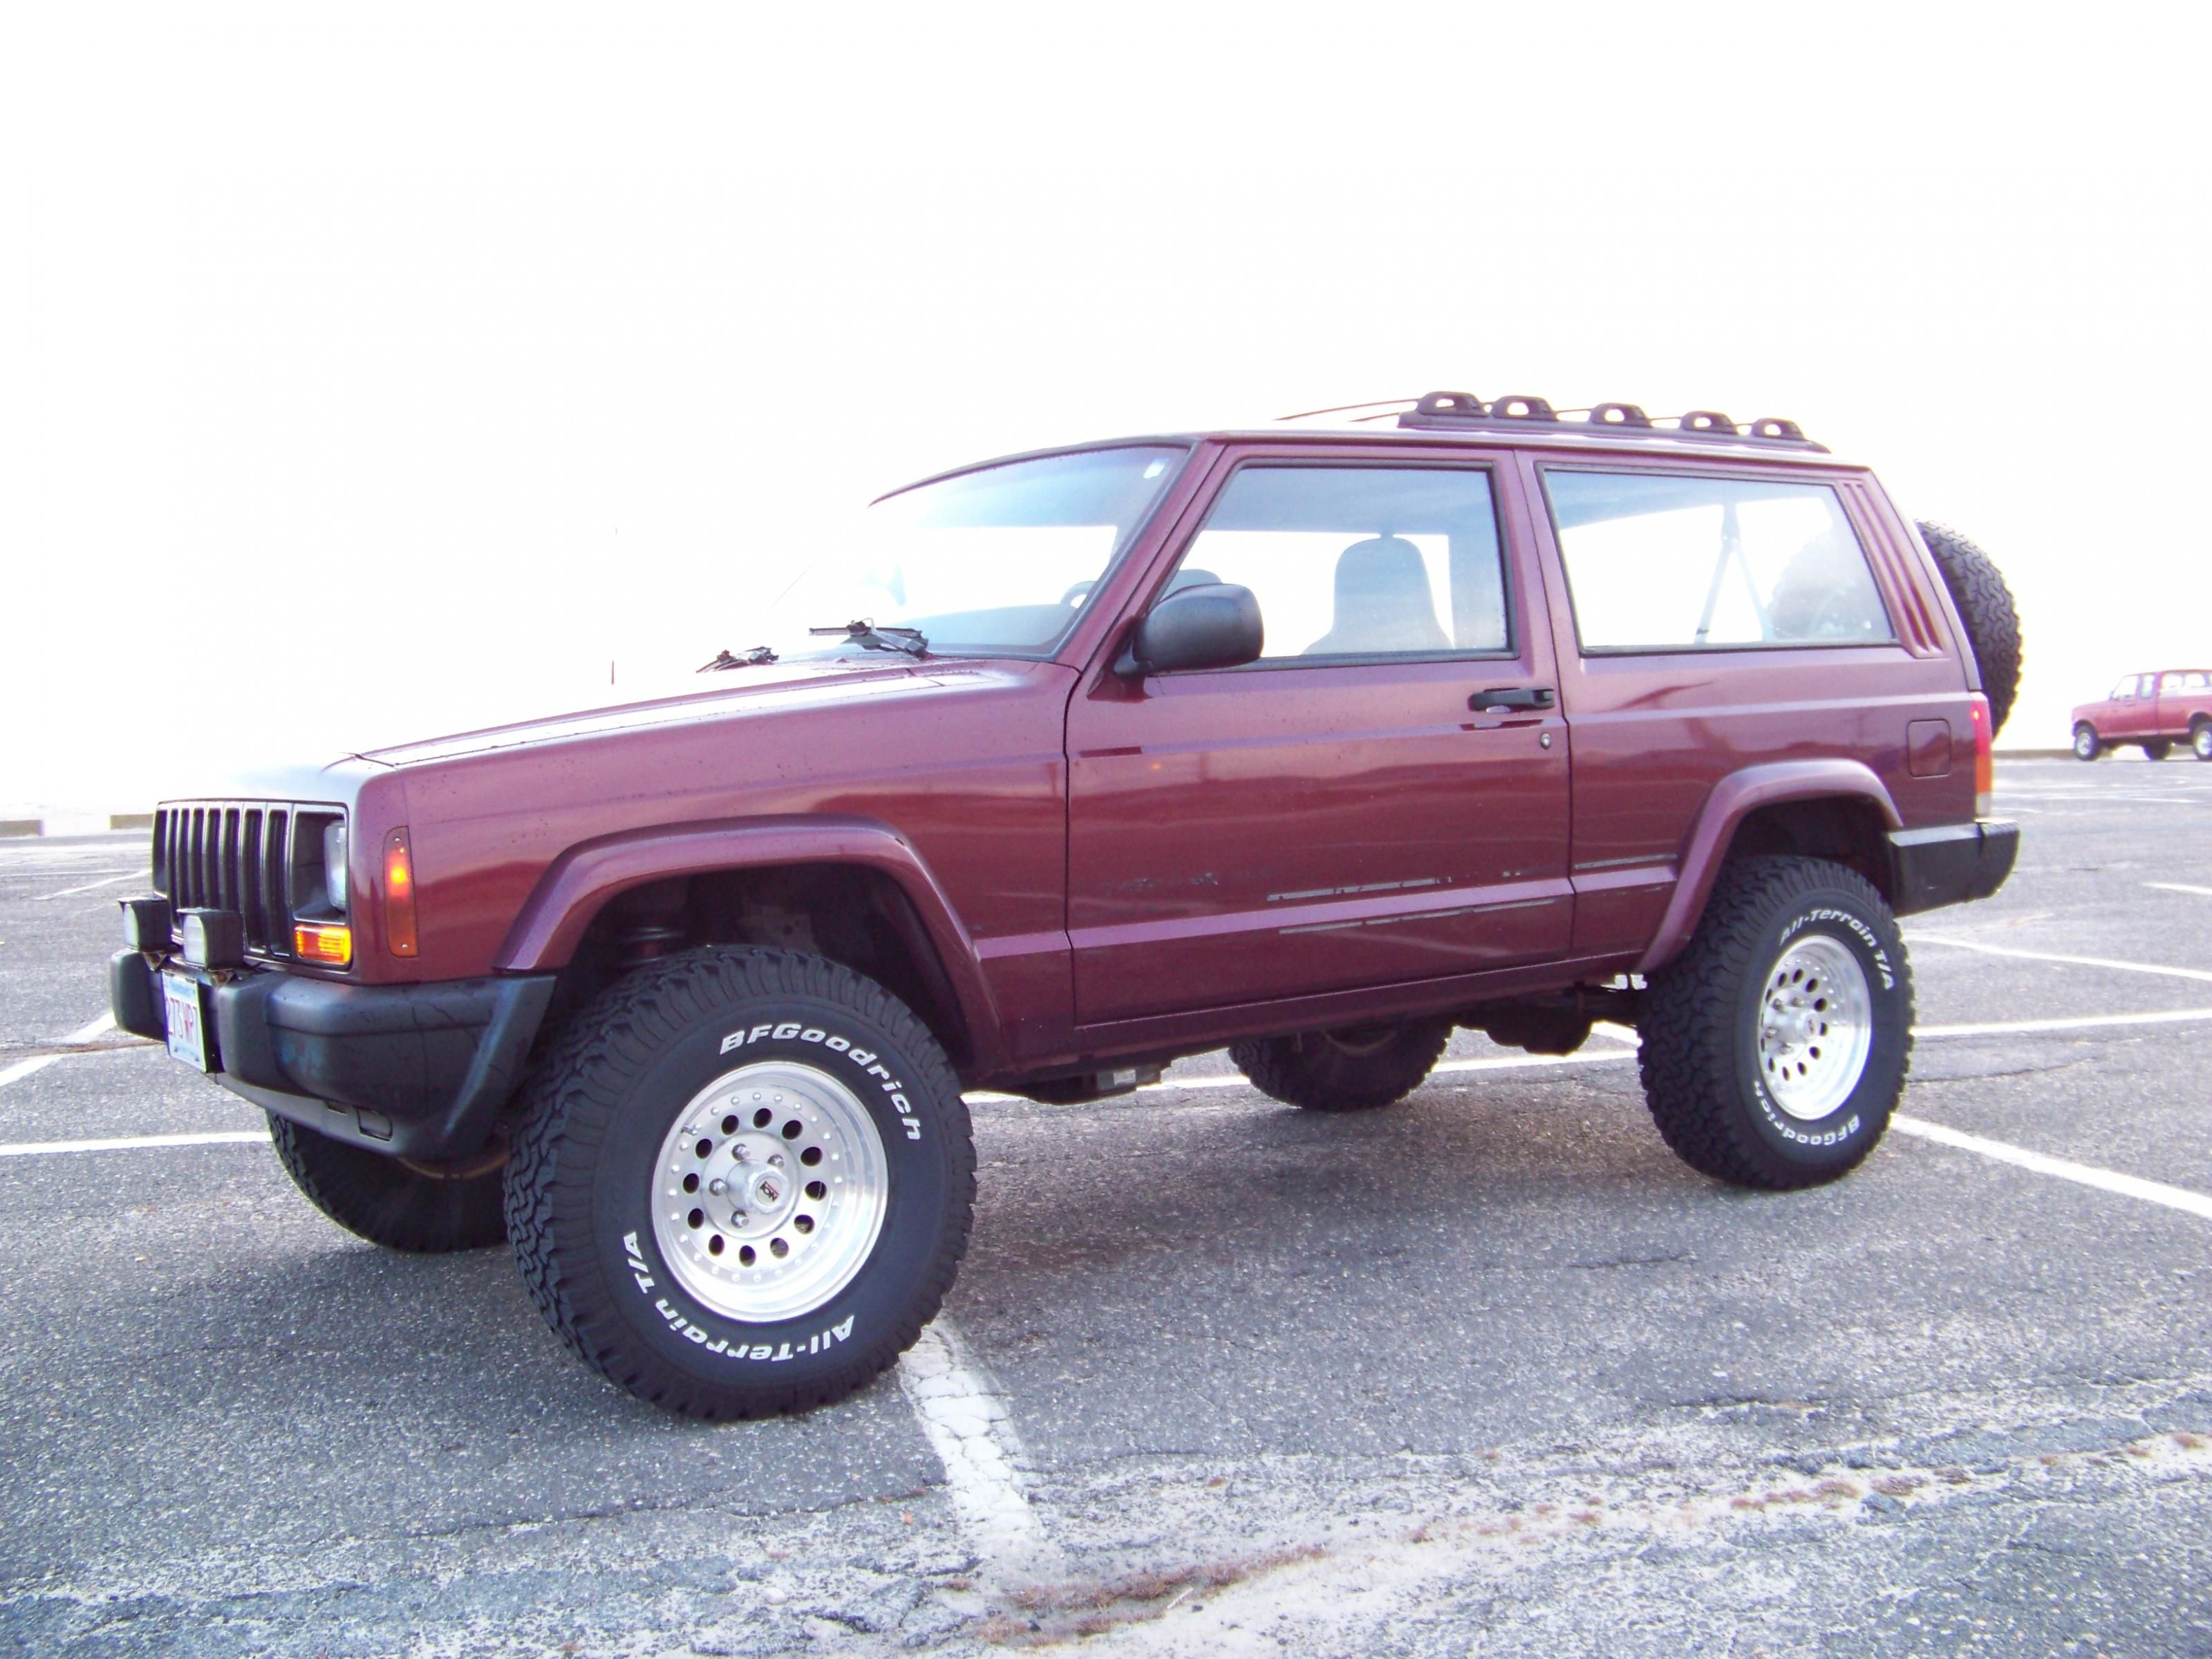 Lifted Jeep Xj For Sale Jpeg http//carimagescolay.casa